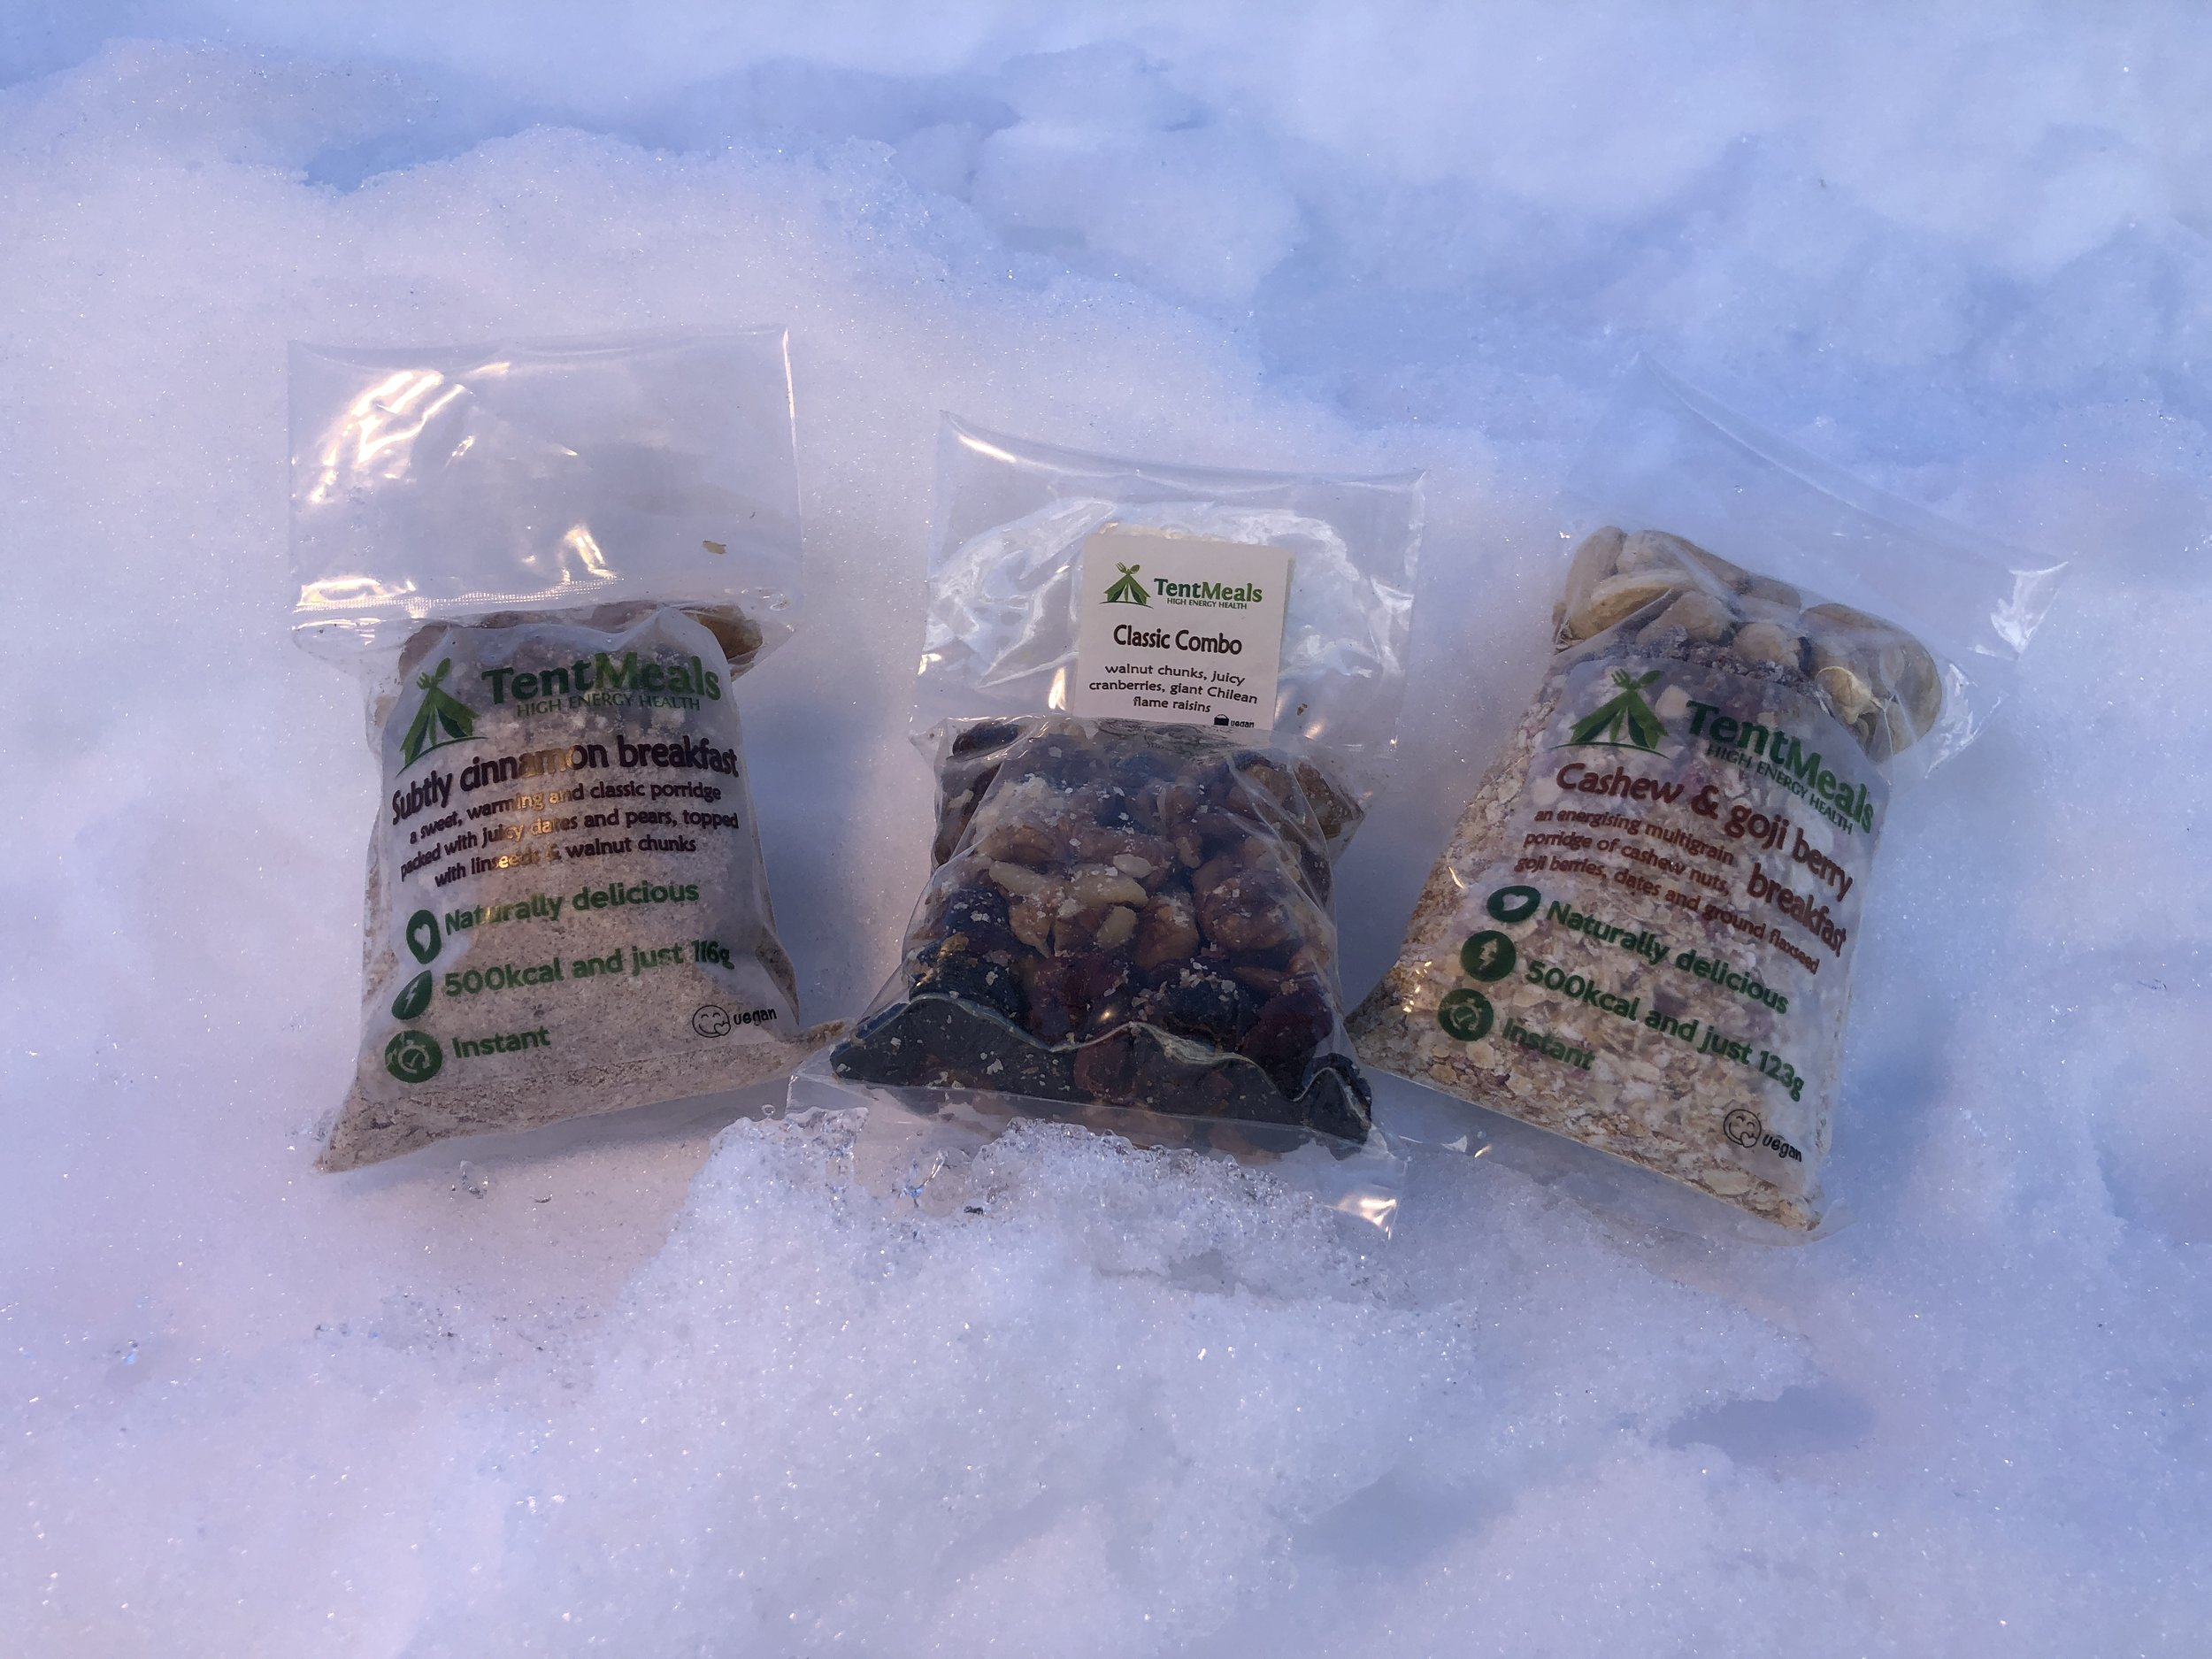 Food - Tent Meals - Having tried many expedition meals we decided to go with Tent Meals because not only are they freakin delicious but they're exclusively Vegetarian and Vegan!